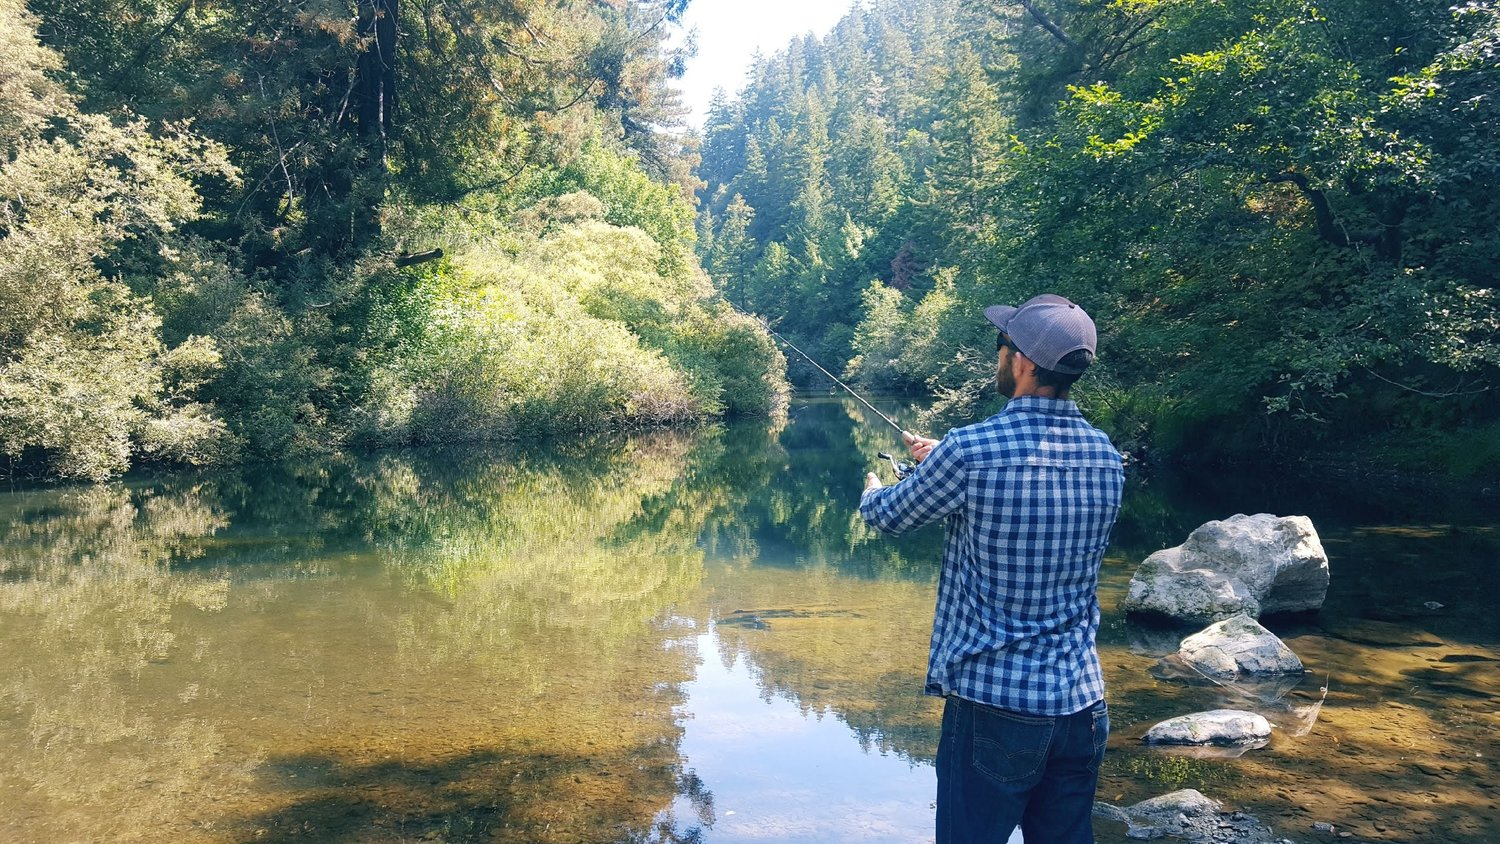 Fishing a river in Northern California, post accident